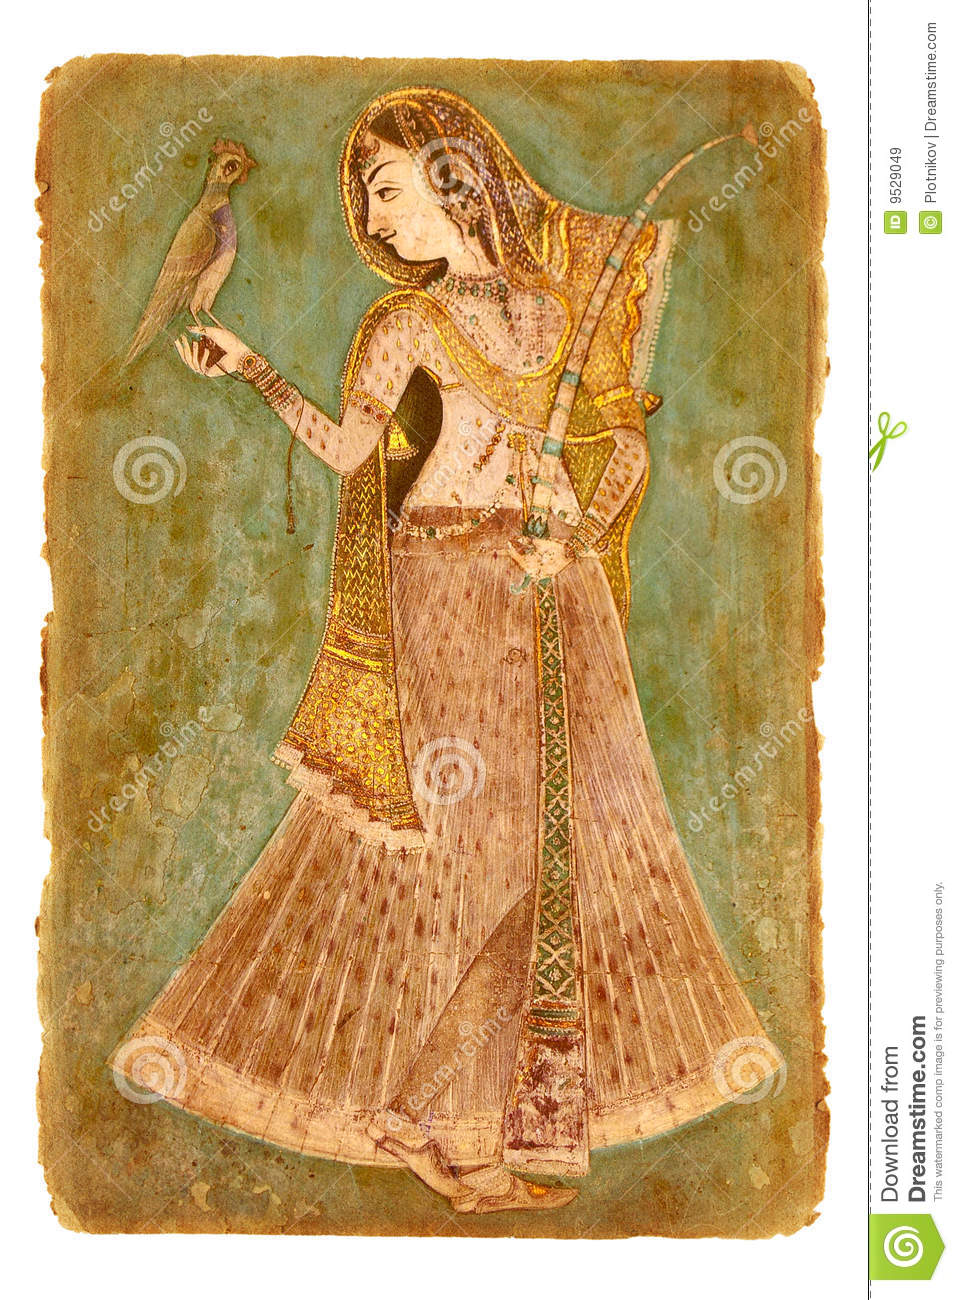 Old Paper With Ancient Indian Picture Royalty Free Stock ...